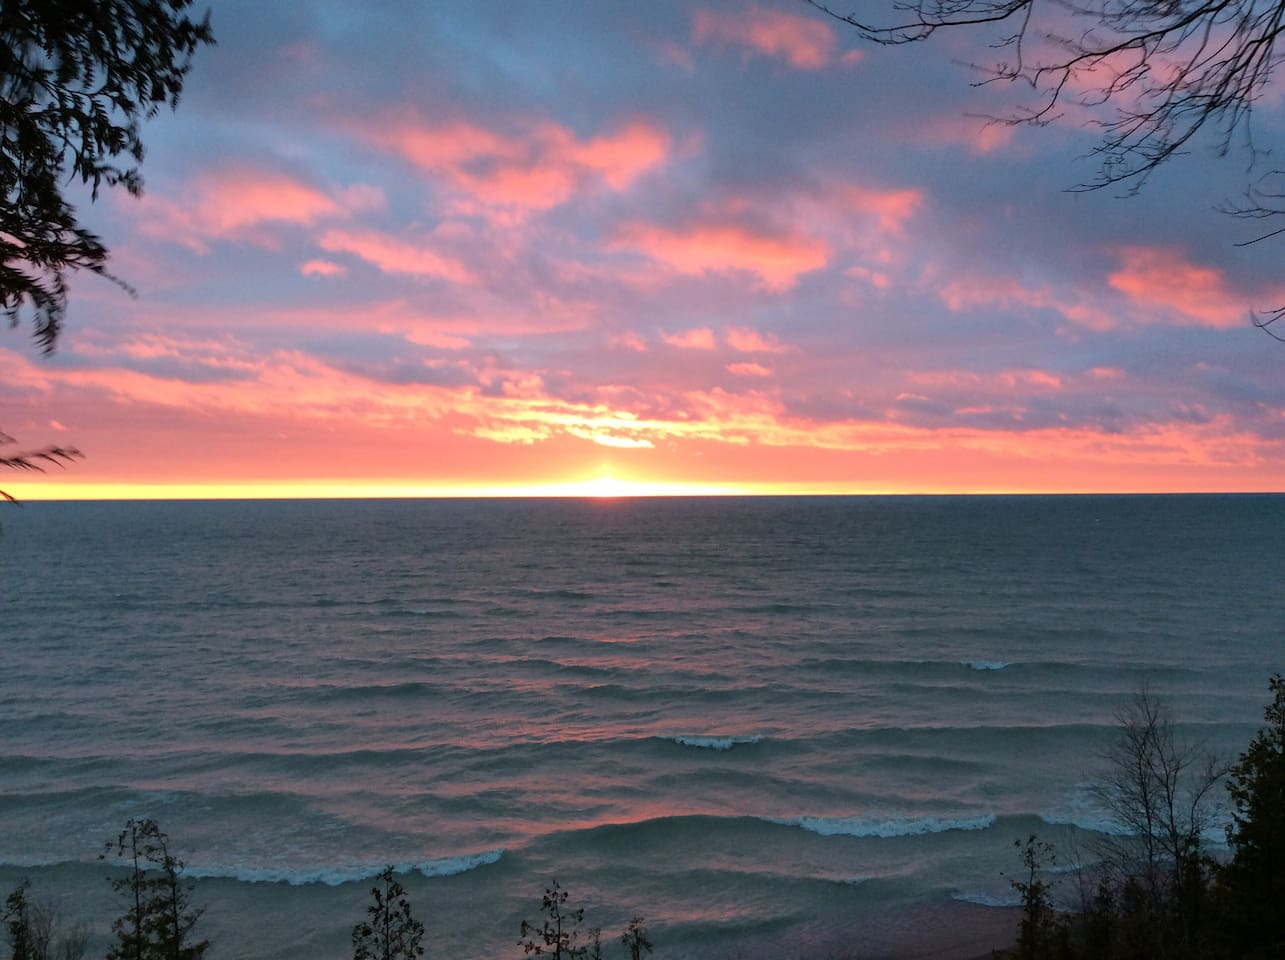 One of the spectacular Lake Huron sunsets!